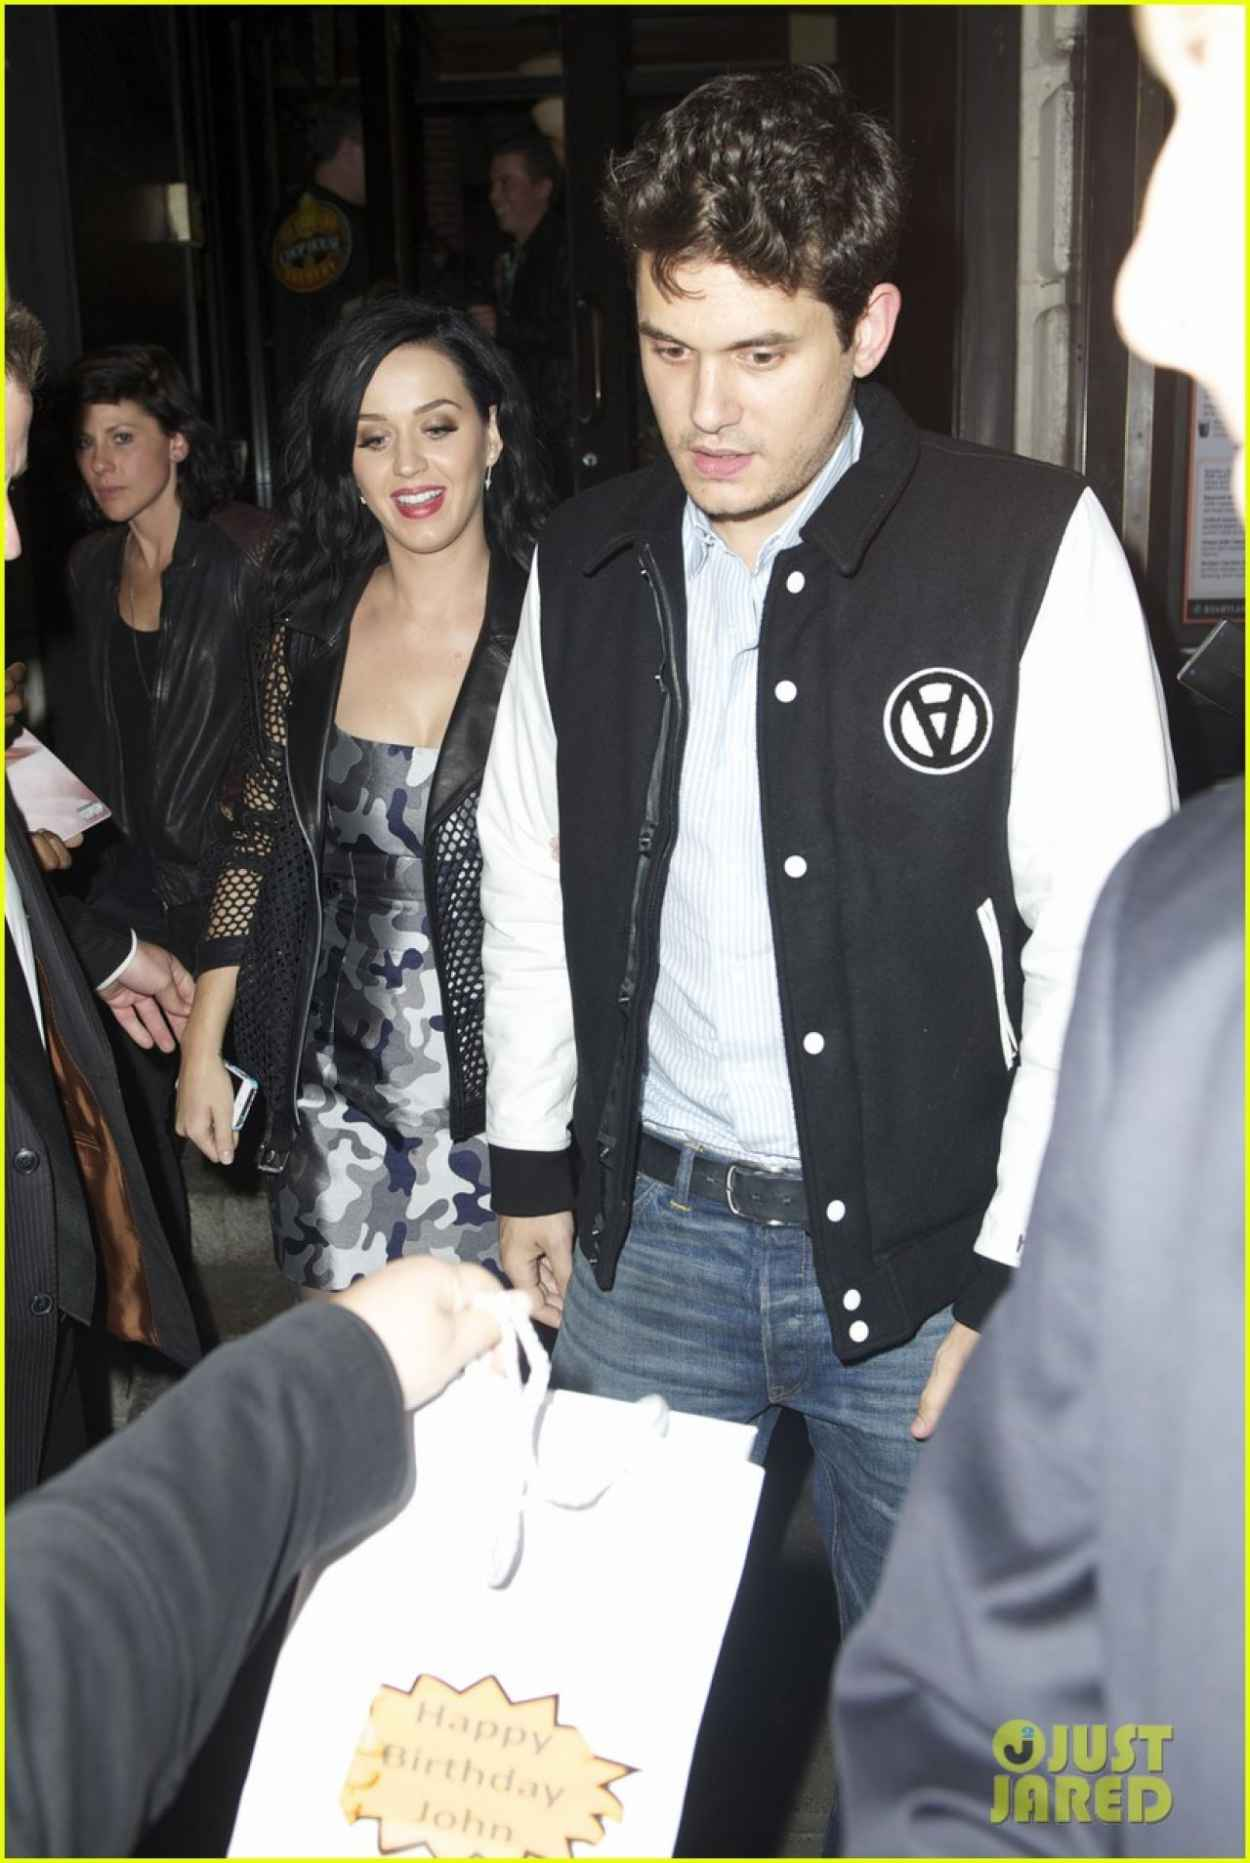 Katy Perry Photos - Saturday Night Live After Party in New York-2